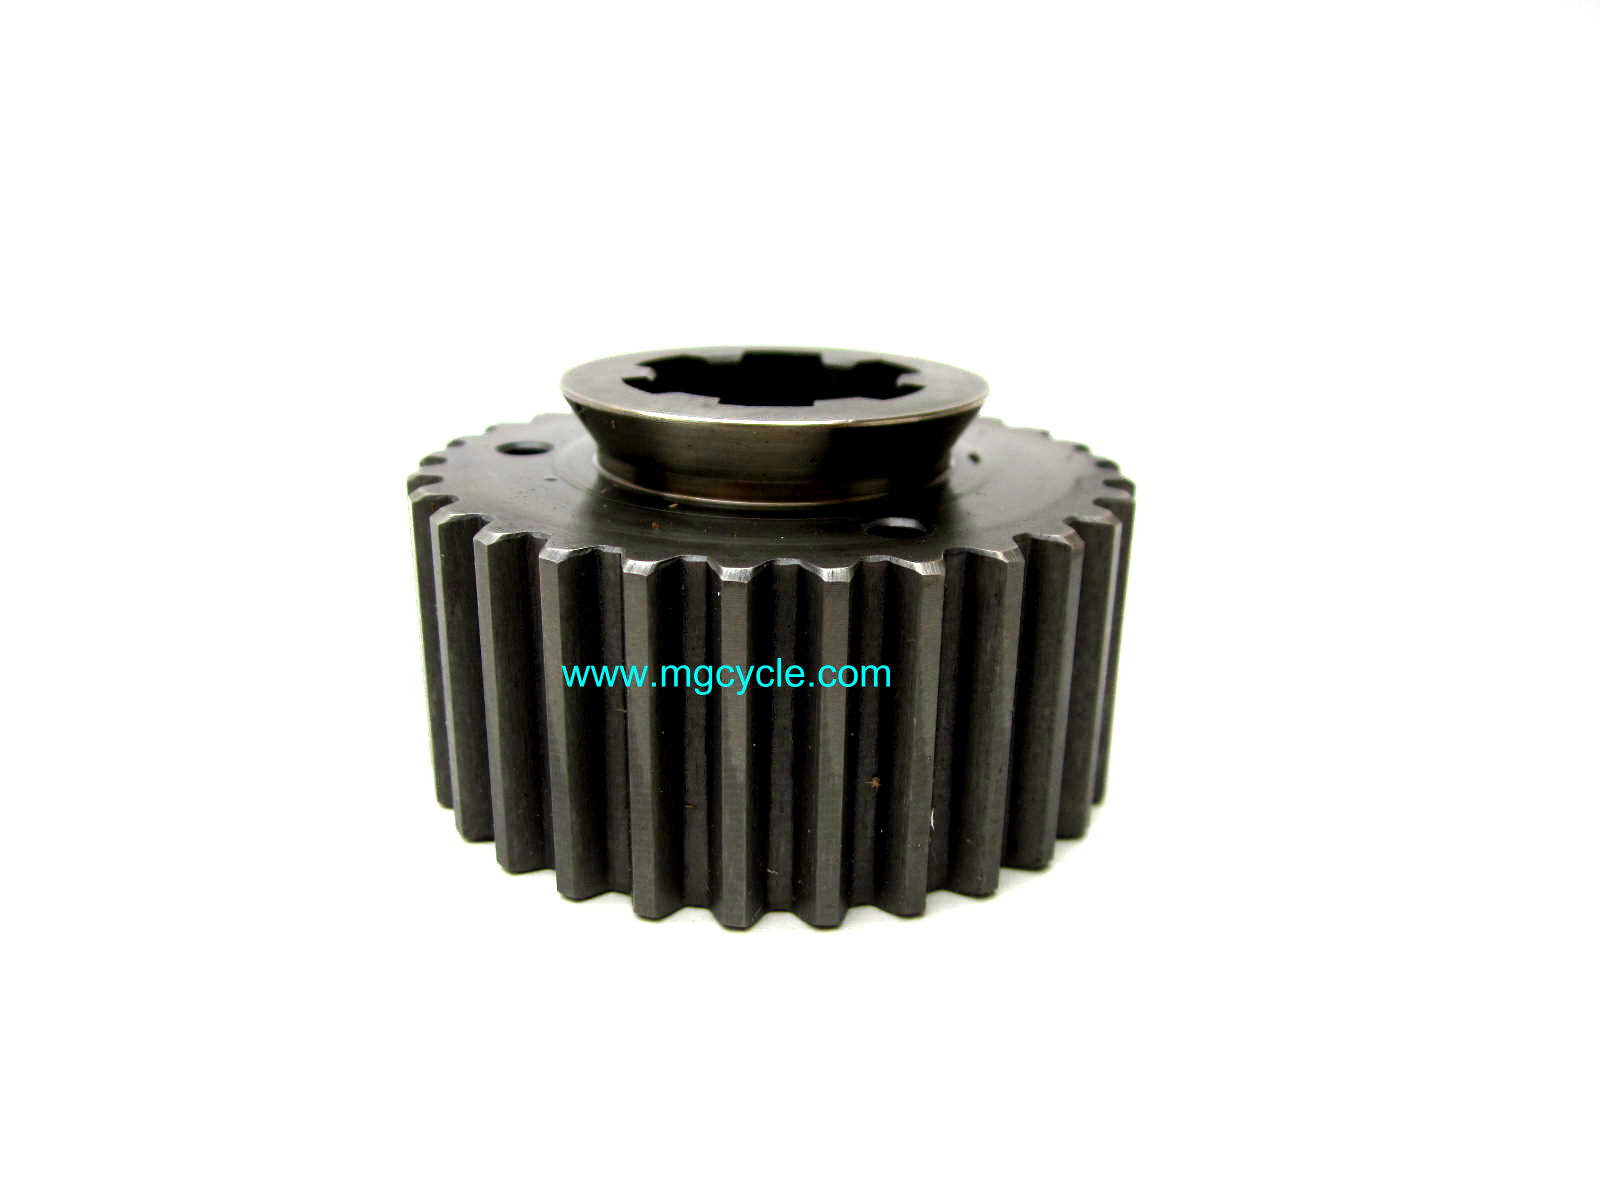 Clutch input spline hub 4 Speeds V700, Amb, '69-72 V7 Special